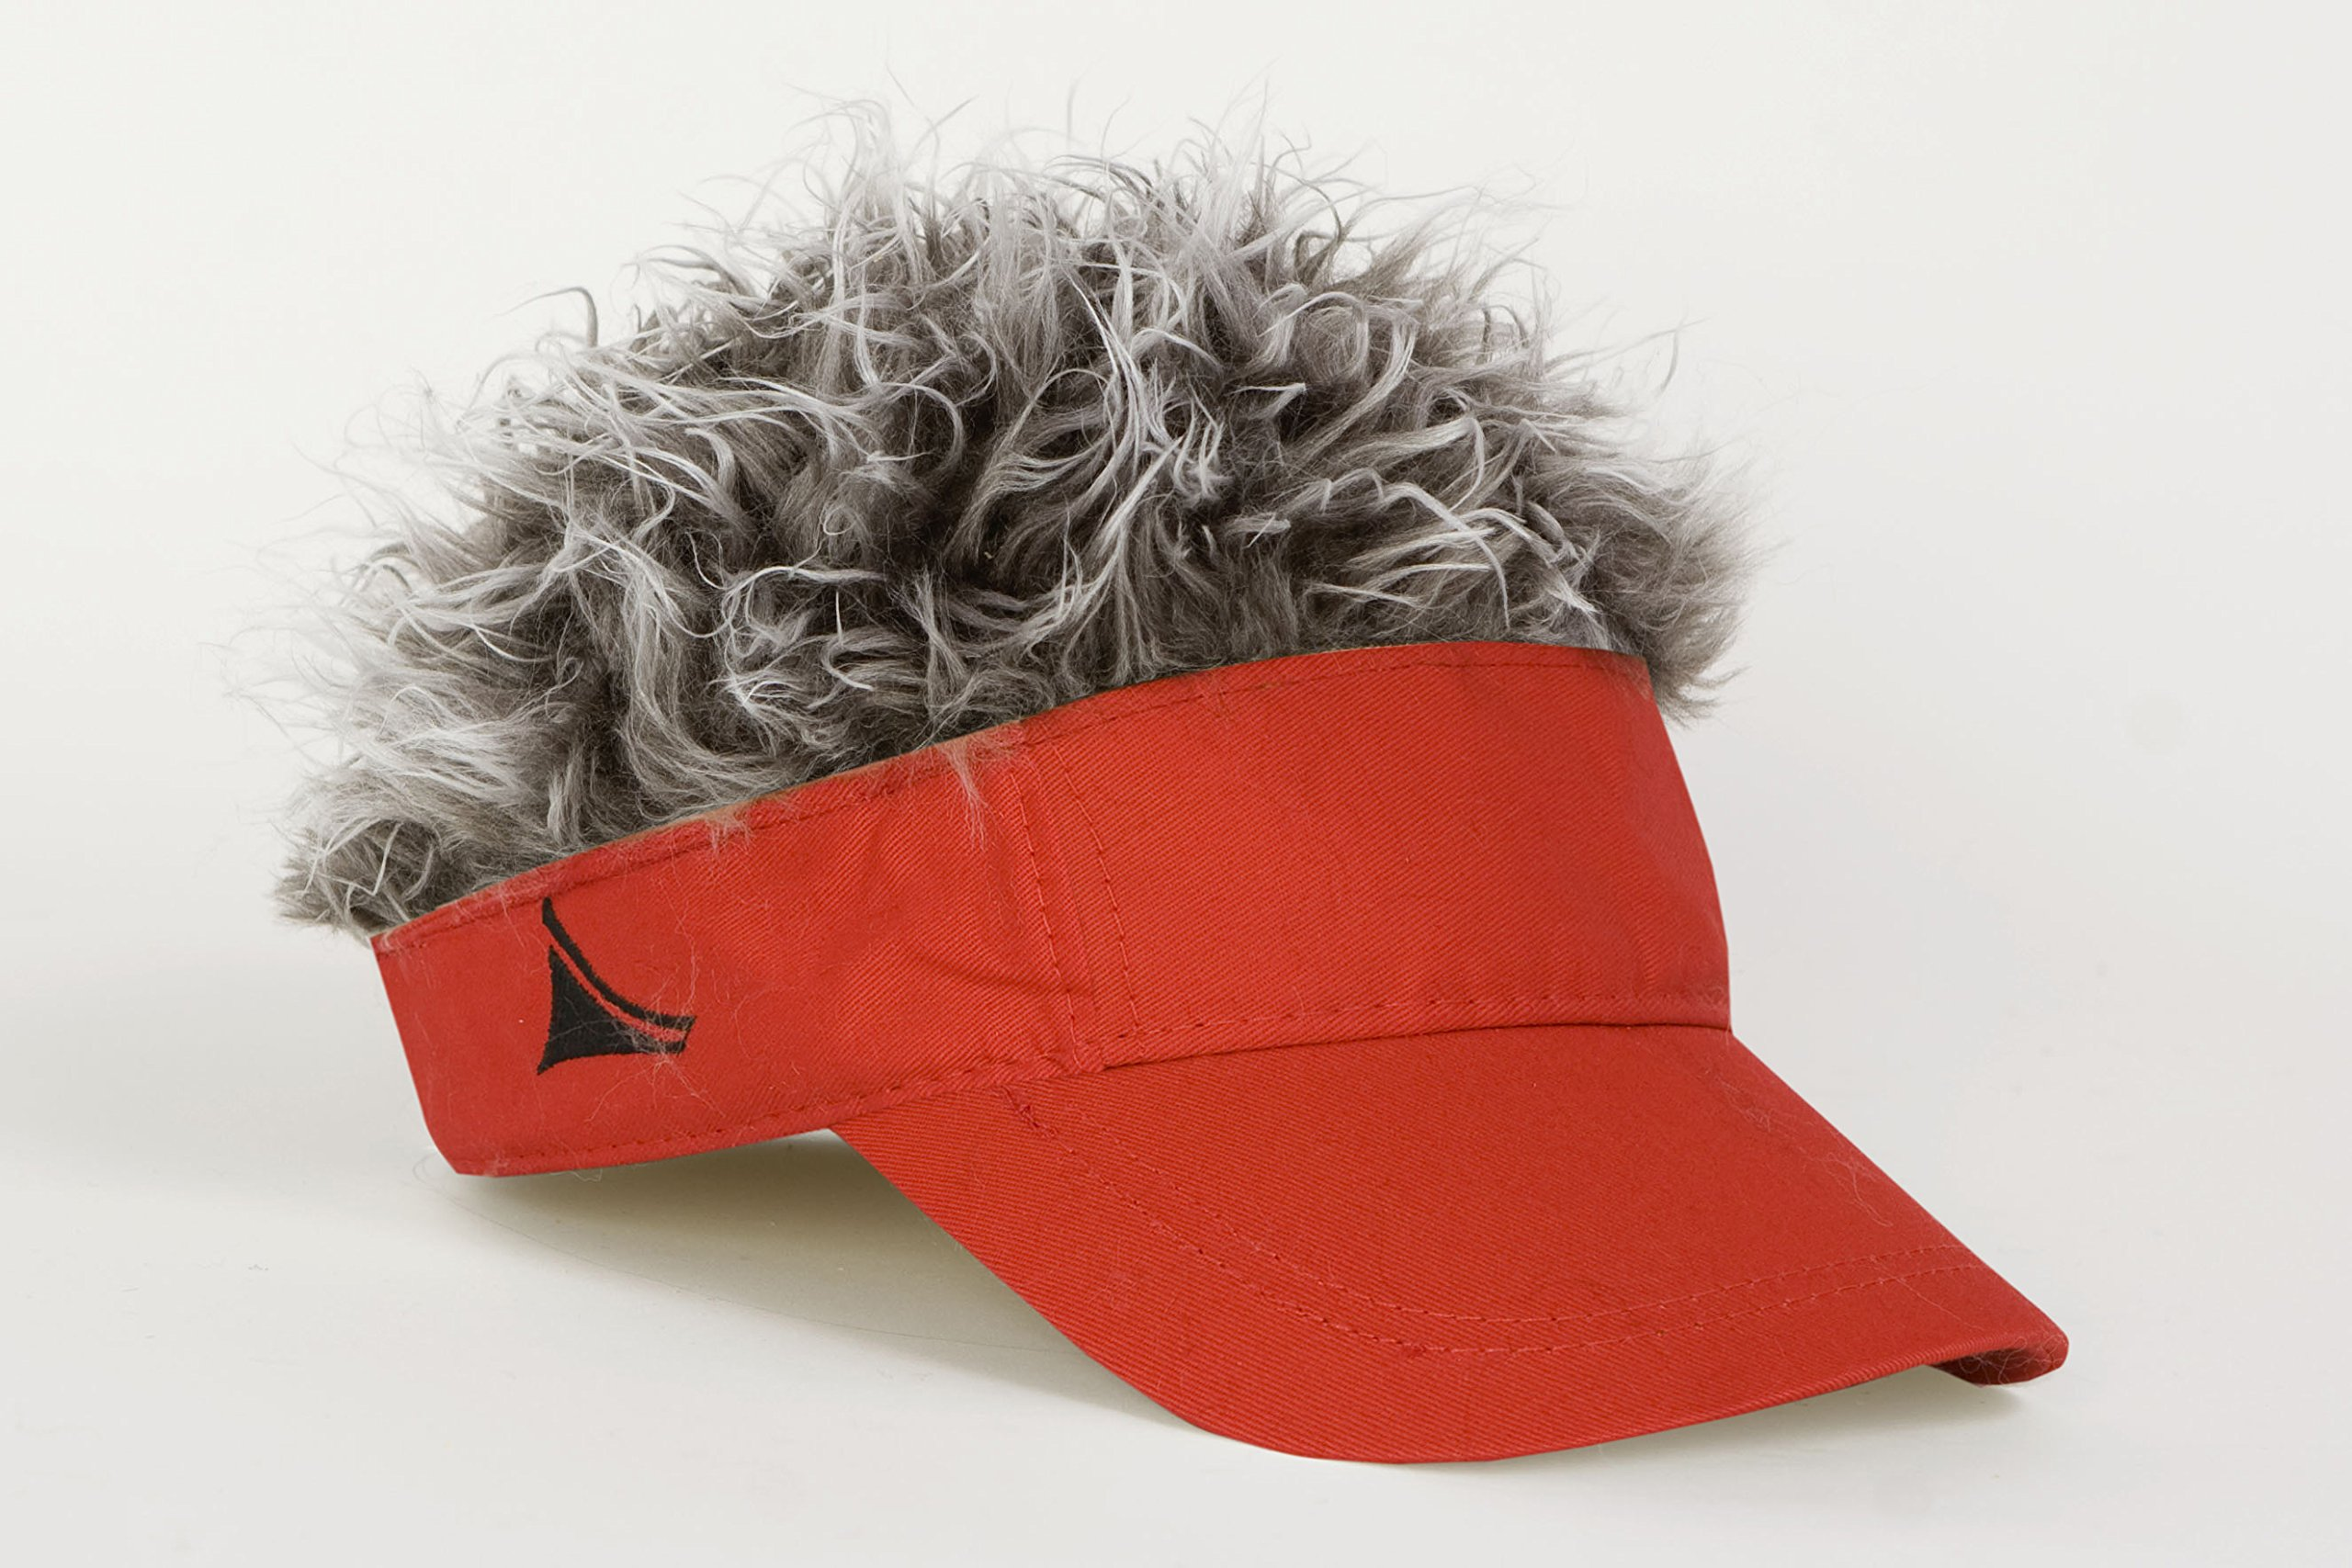 FlairHair Red Visor with Gray Hair by HairHat